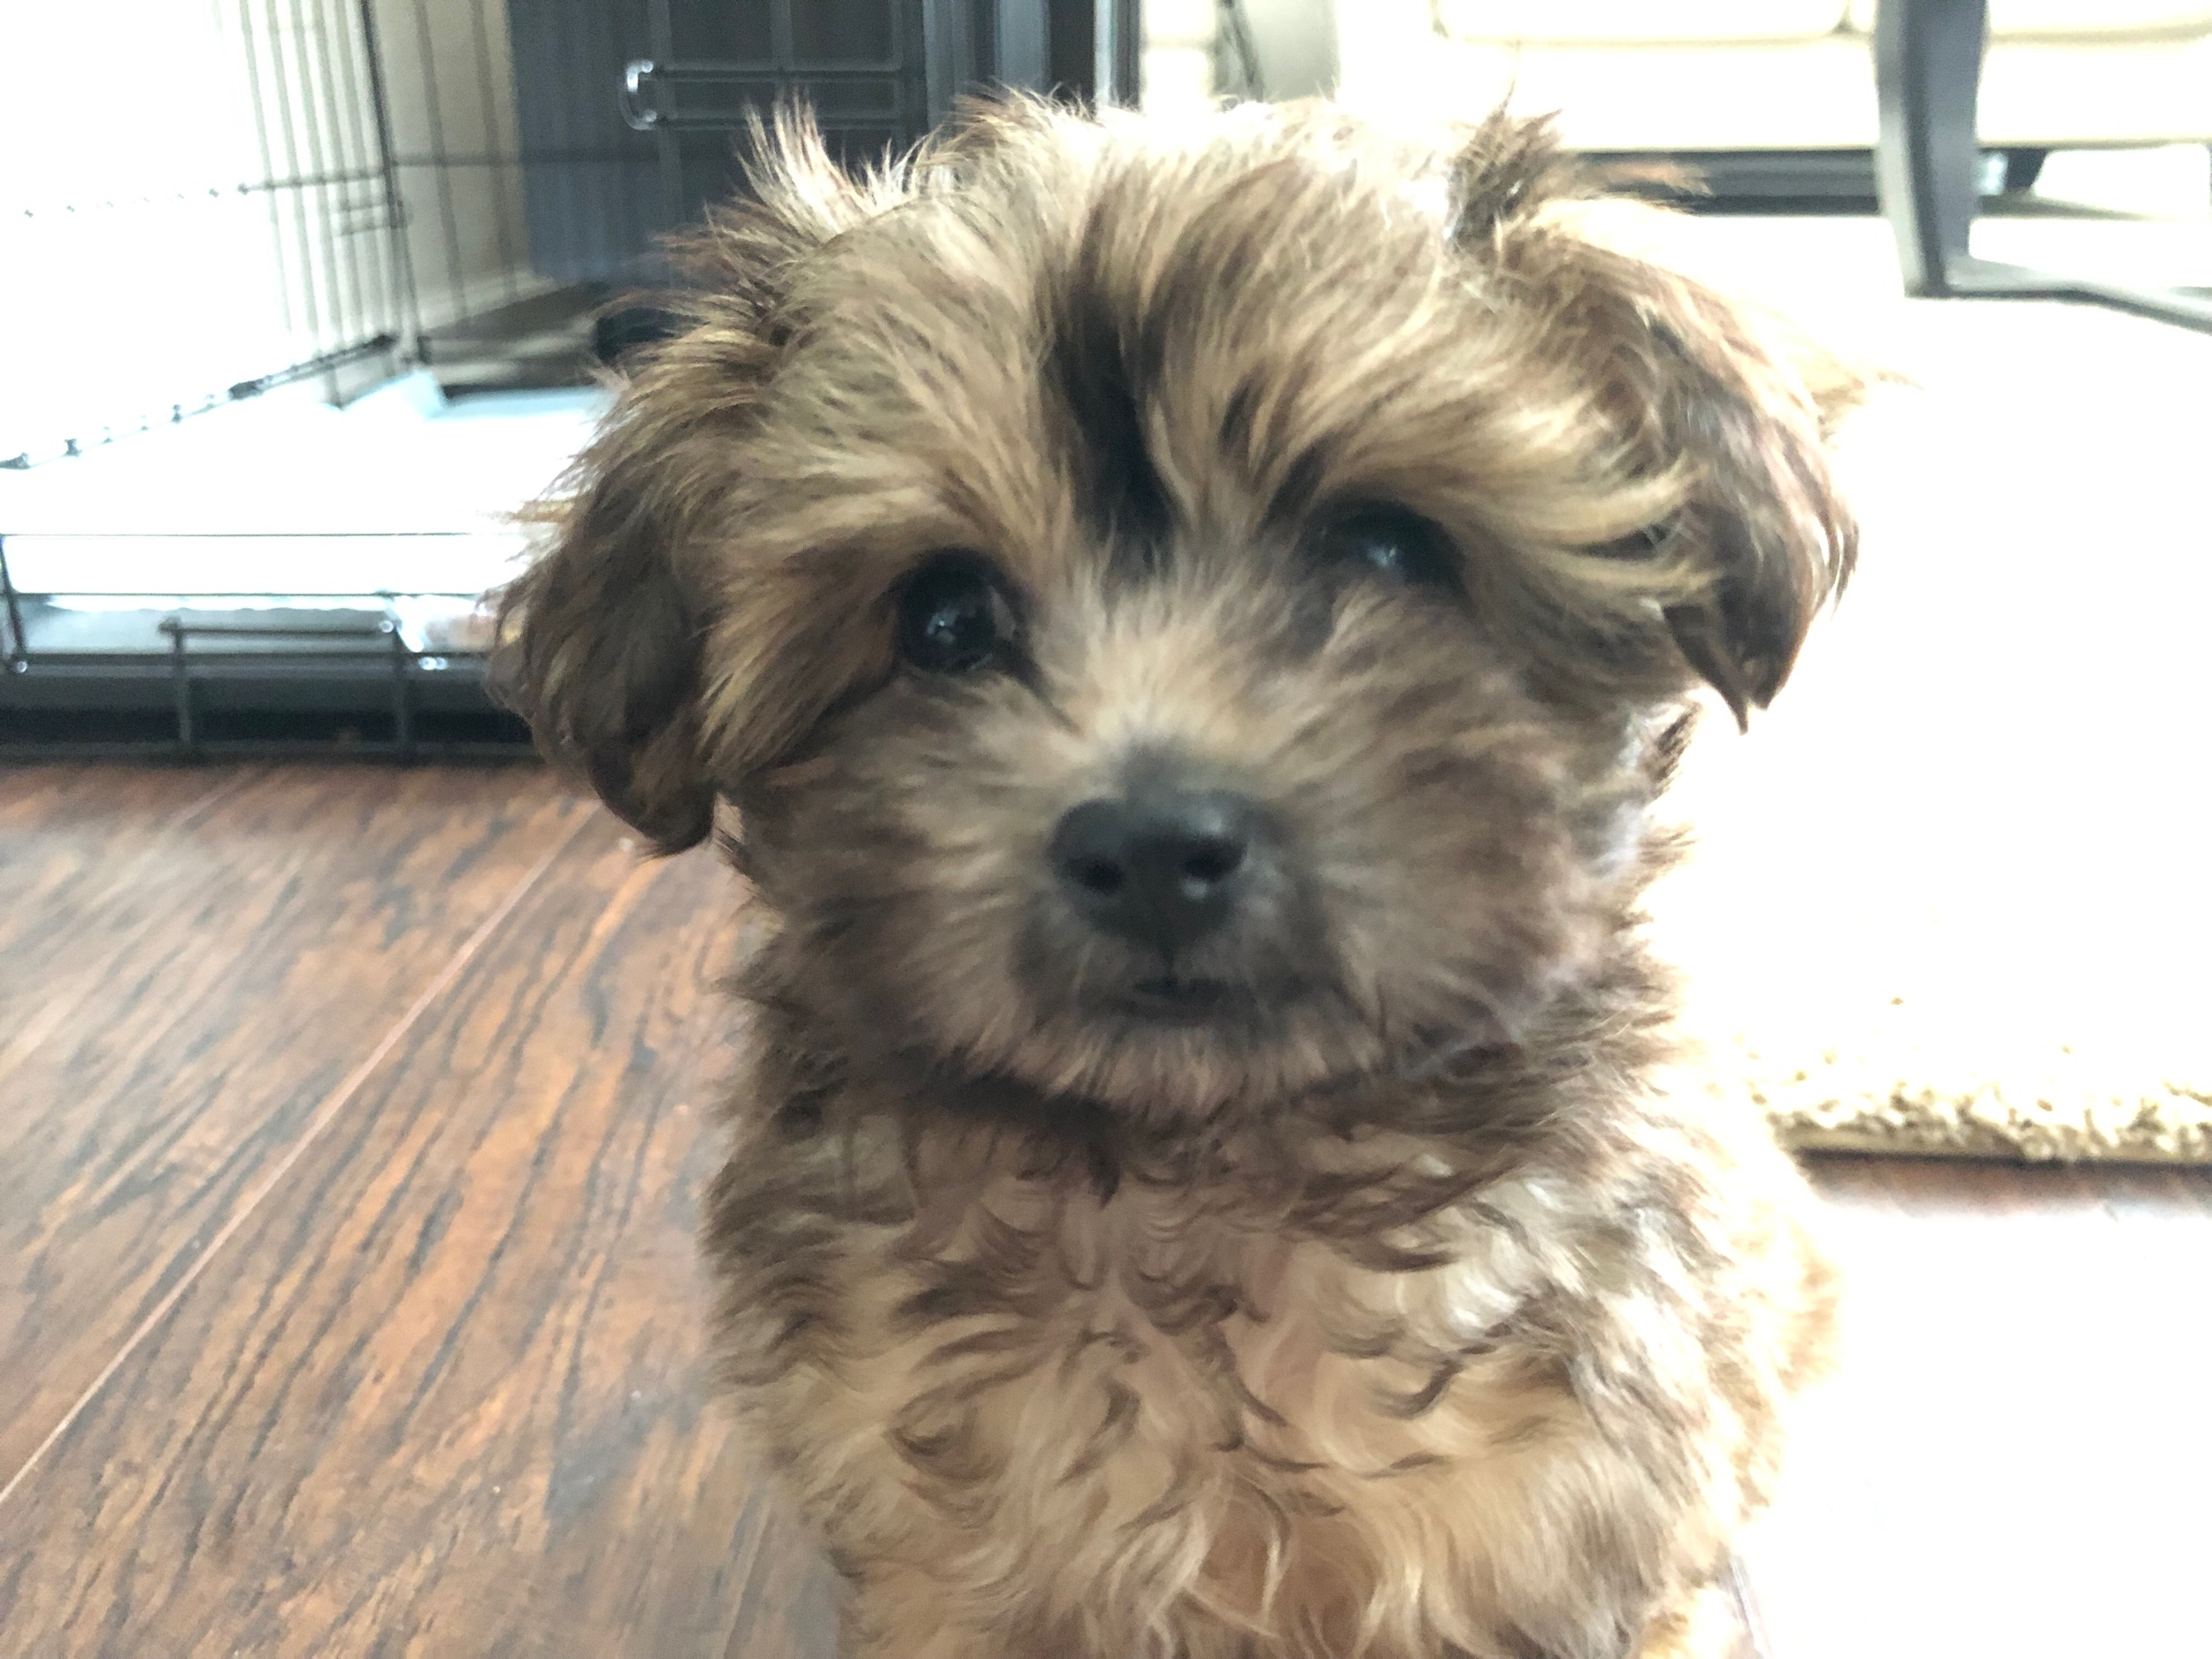 Puppy tax! Mac is a 10 week old Yorkiepoo.